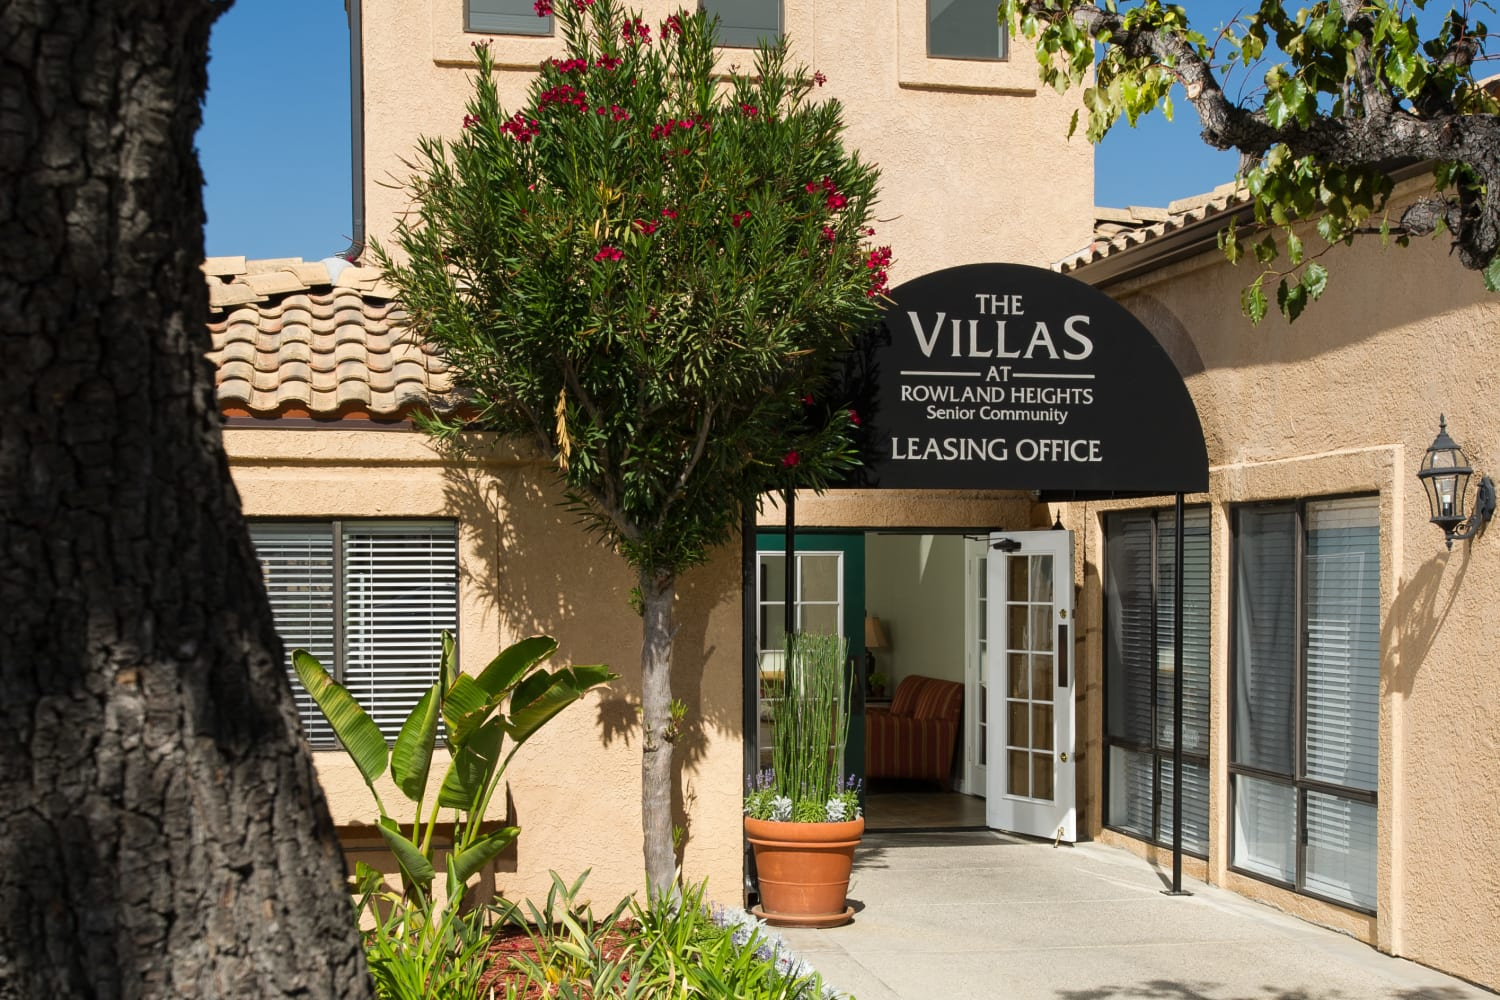 Photos of The Villas at Rowland Heights in Rowland Heights